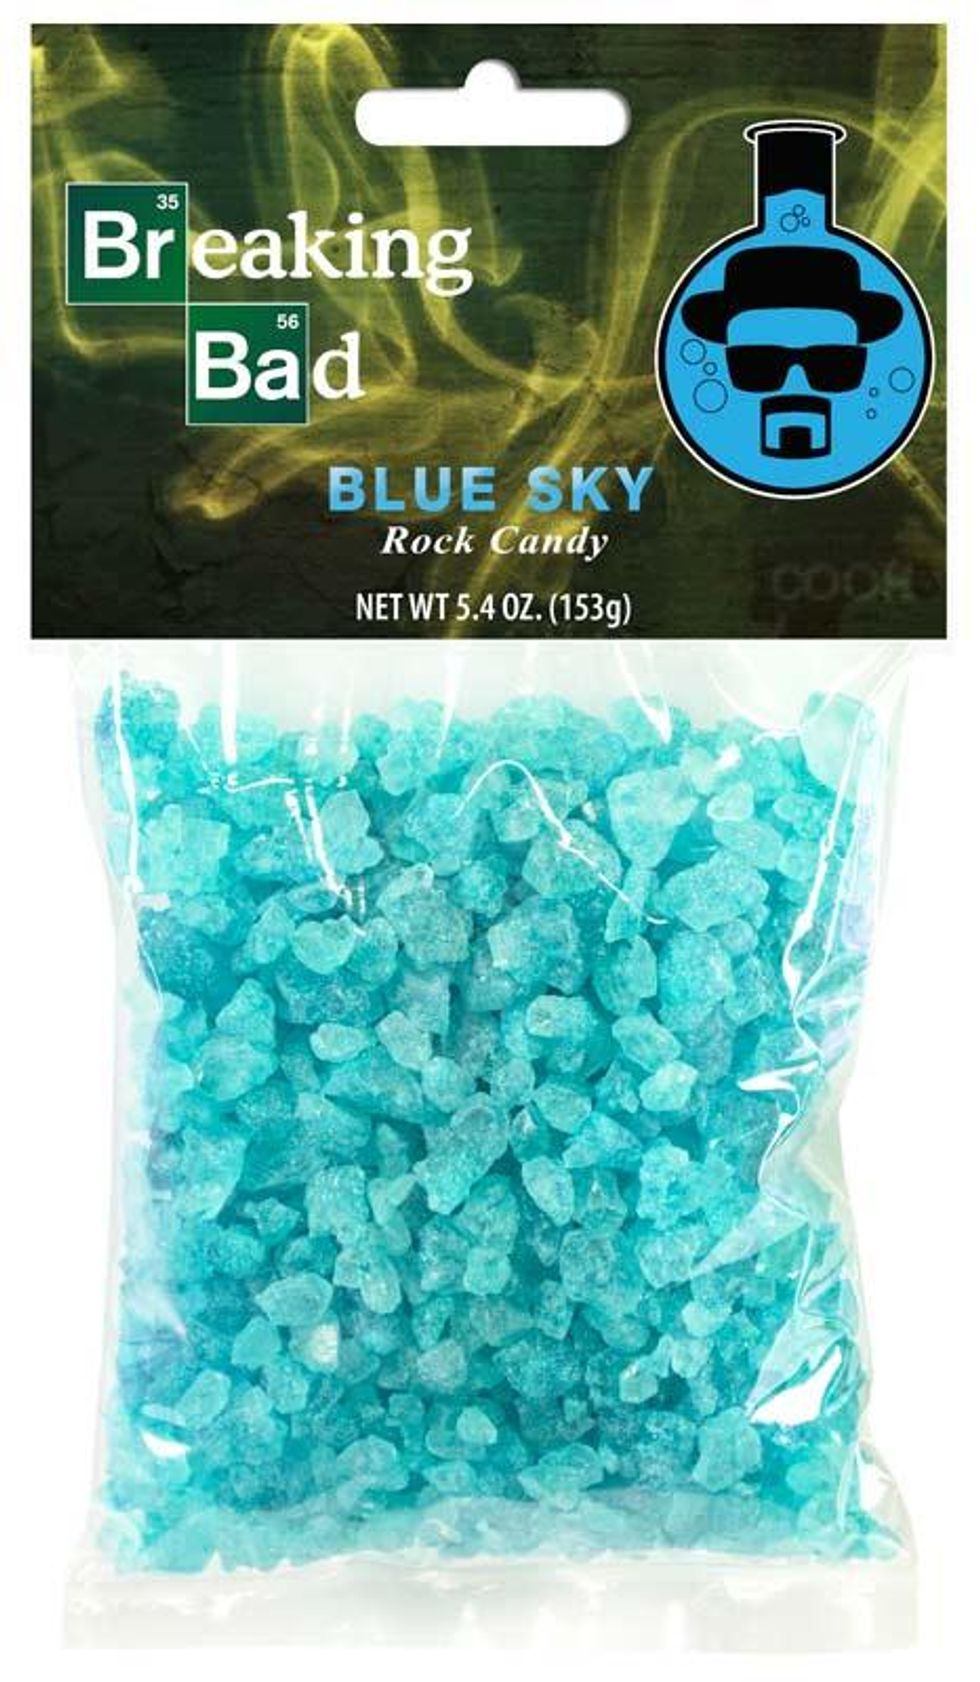 This 'Breaking Bad' Candy Shaped Like the Show's Blue Meth Is a Really Bad Idea